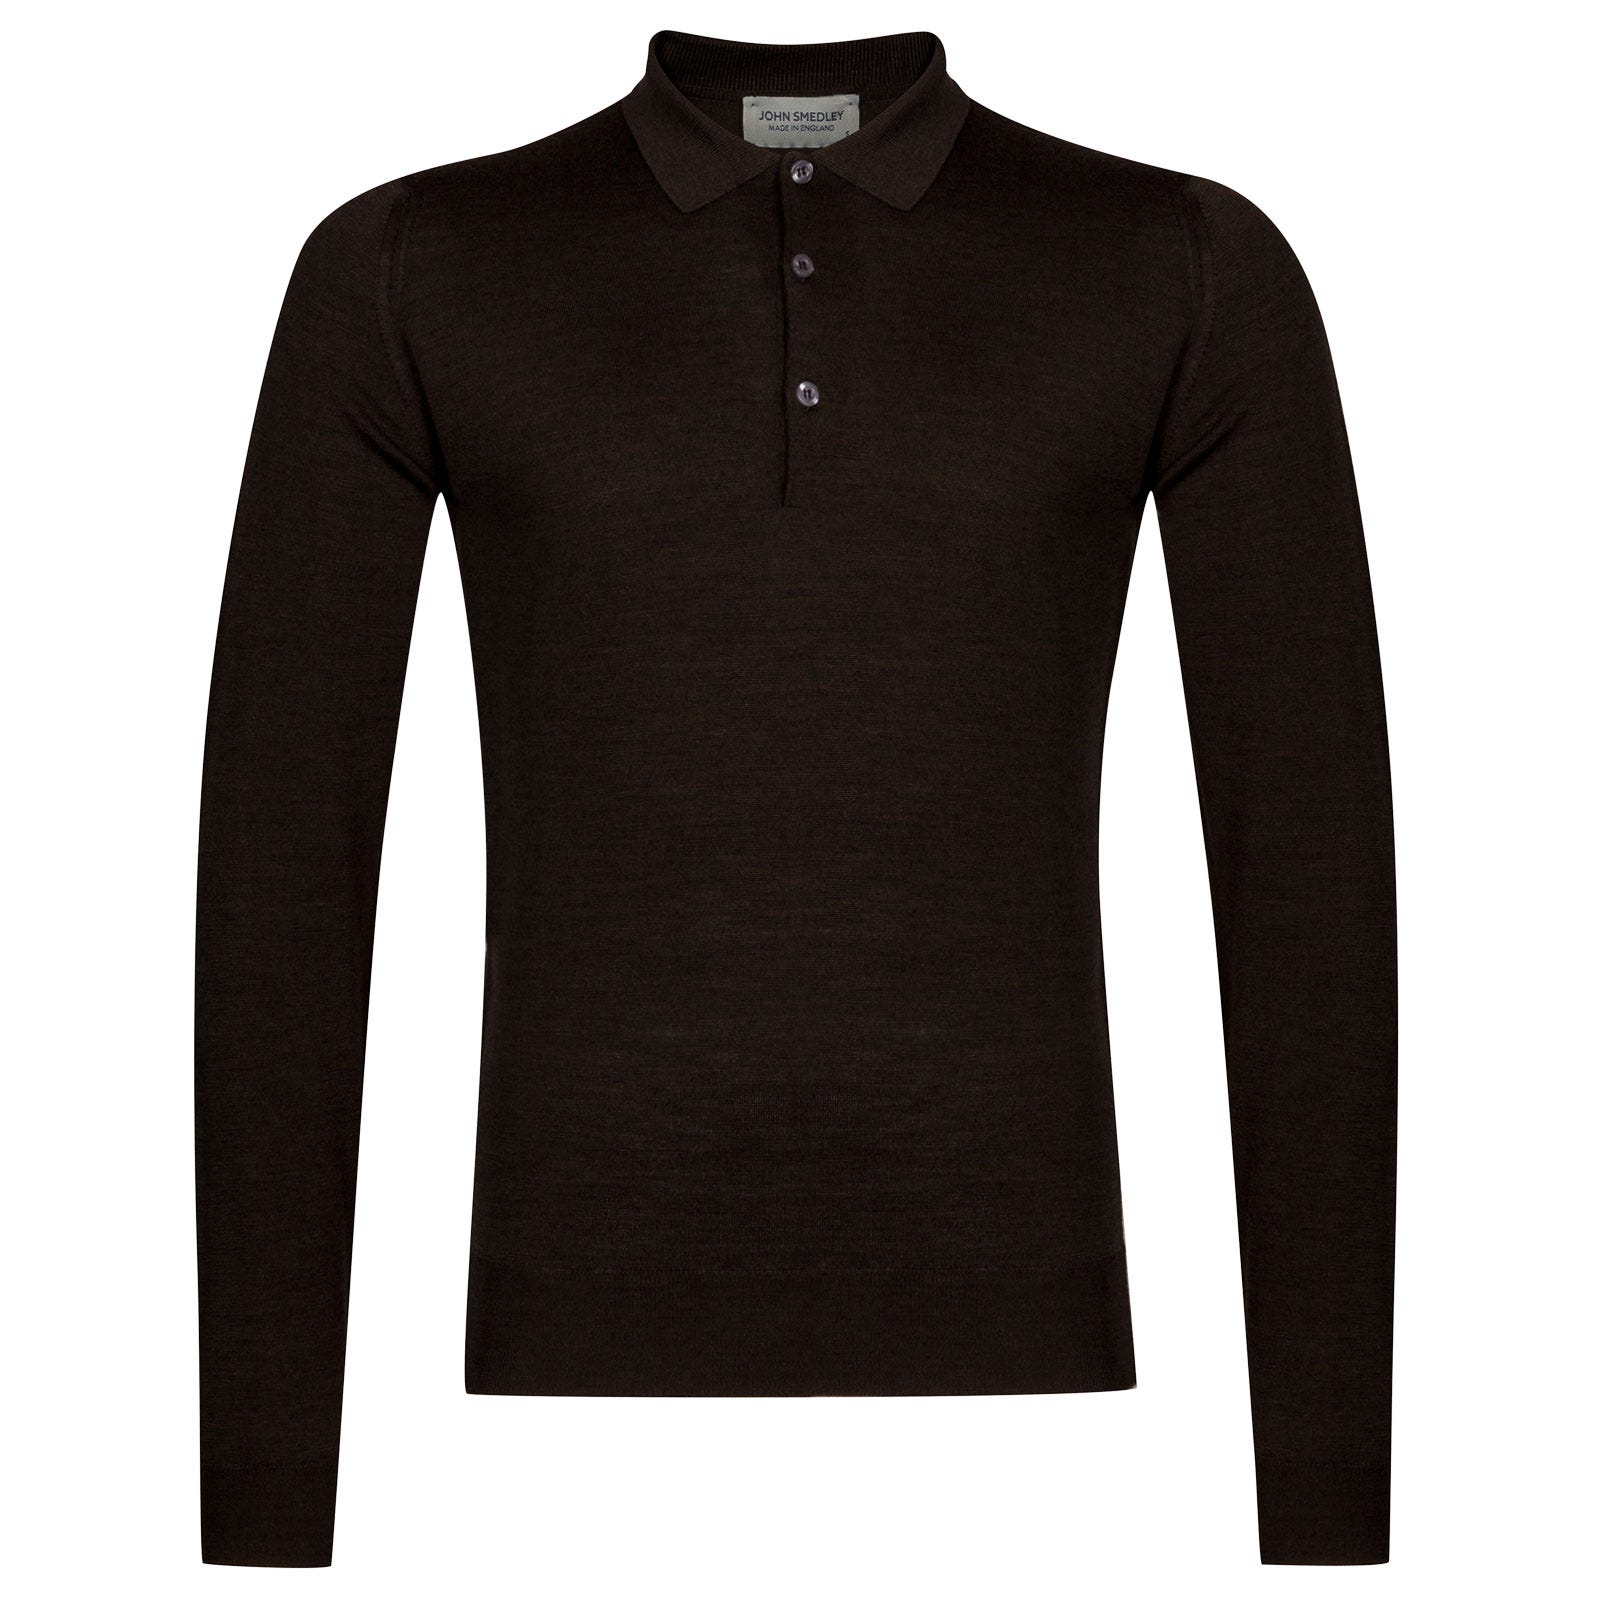 John Smedley belper Merino Wool Shirt in Chestnut-S